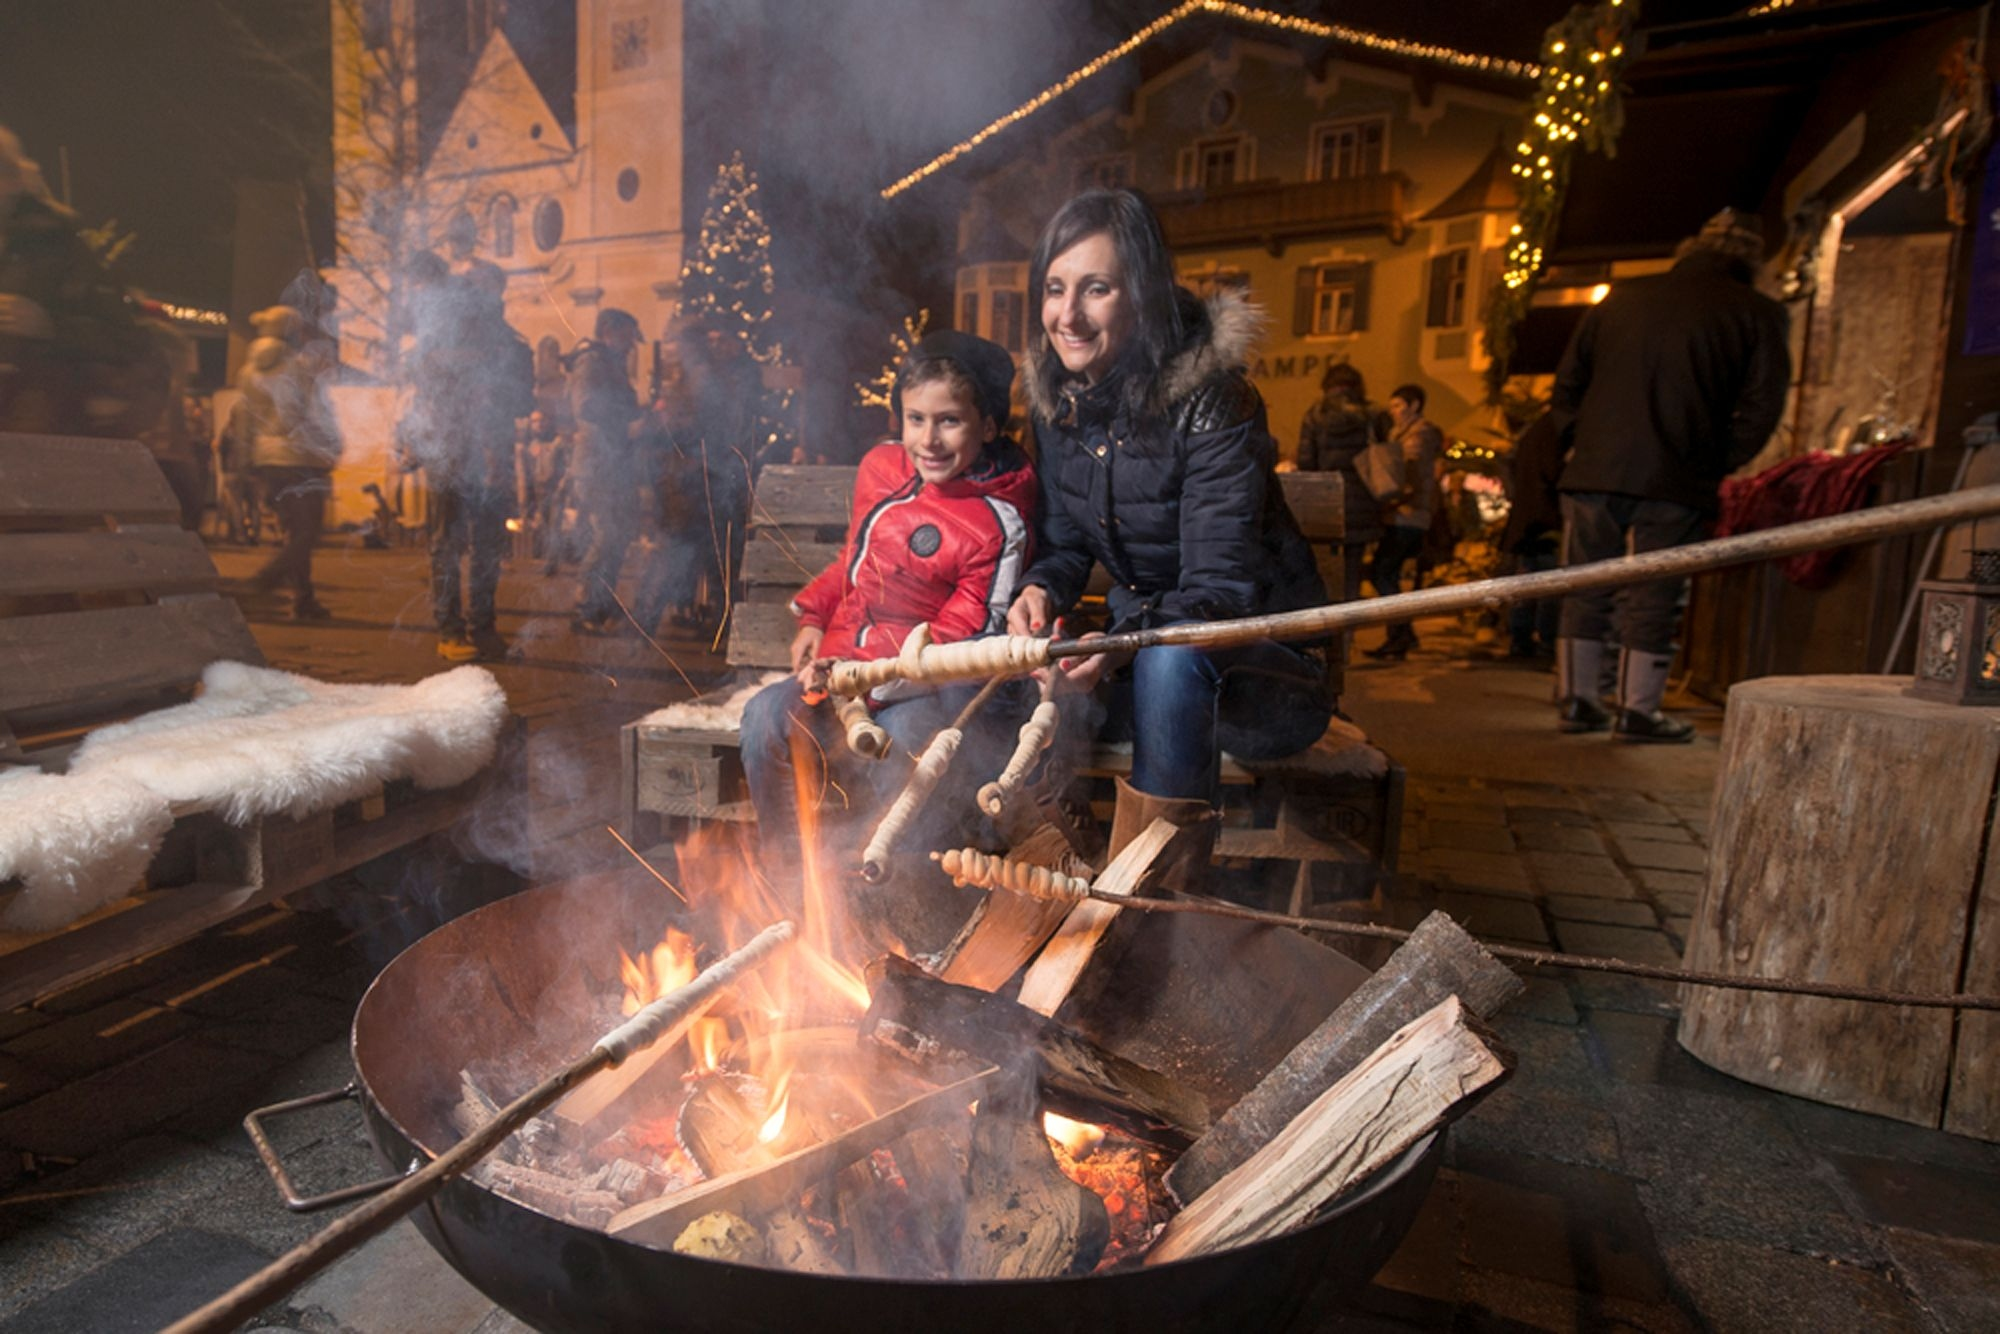 Family cooking food over the fire at St Johann Christmas market